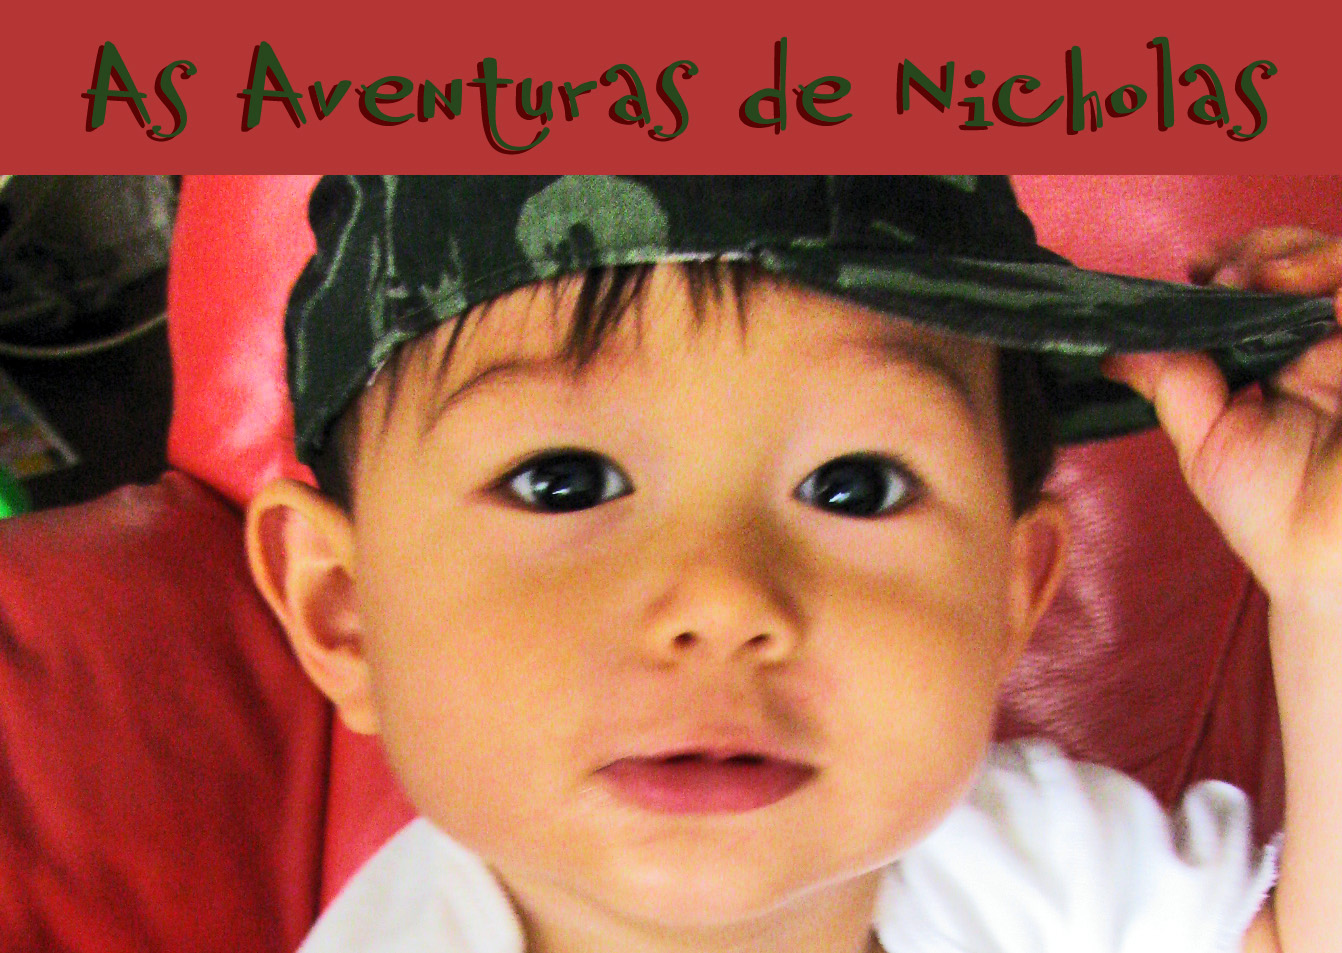 AS AVENTURAS DE NICHOLAS